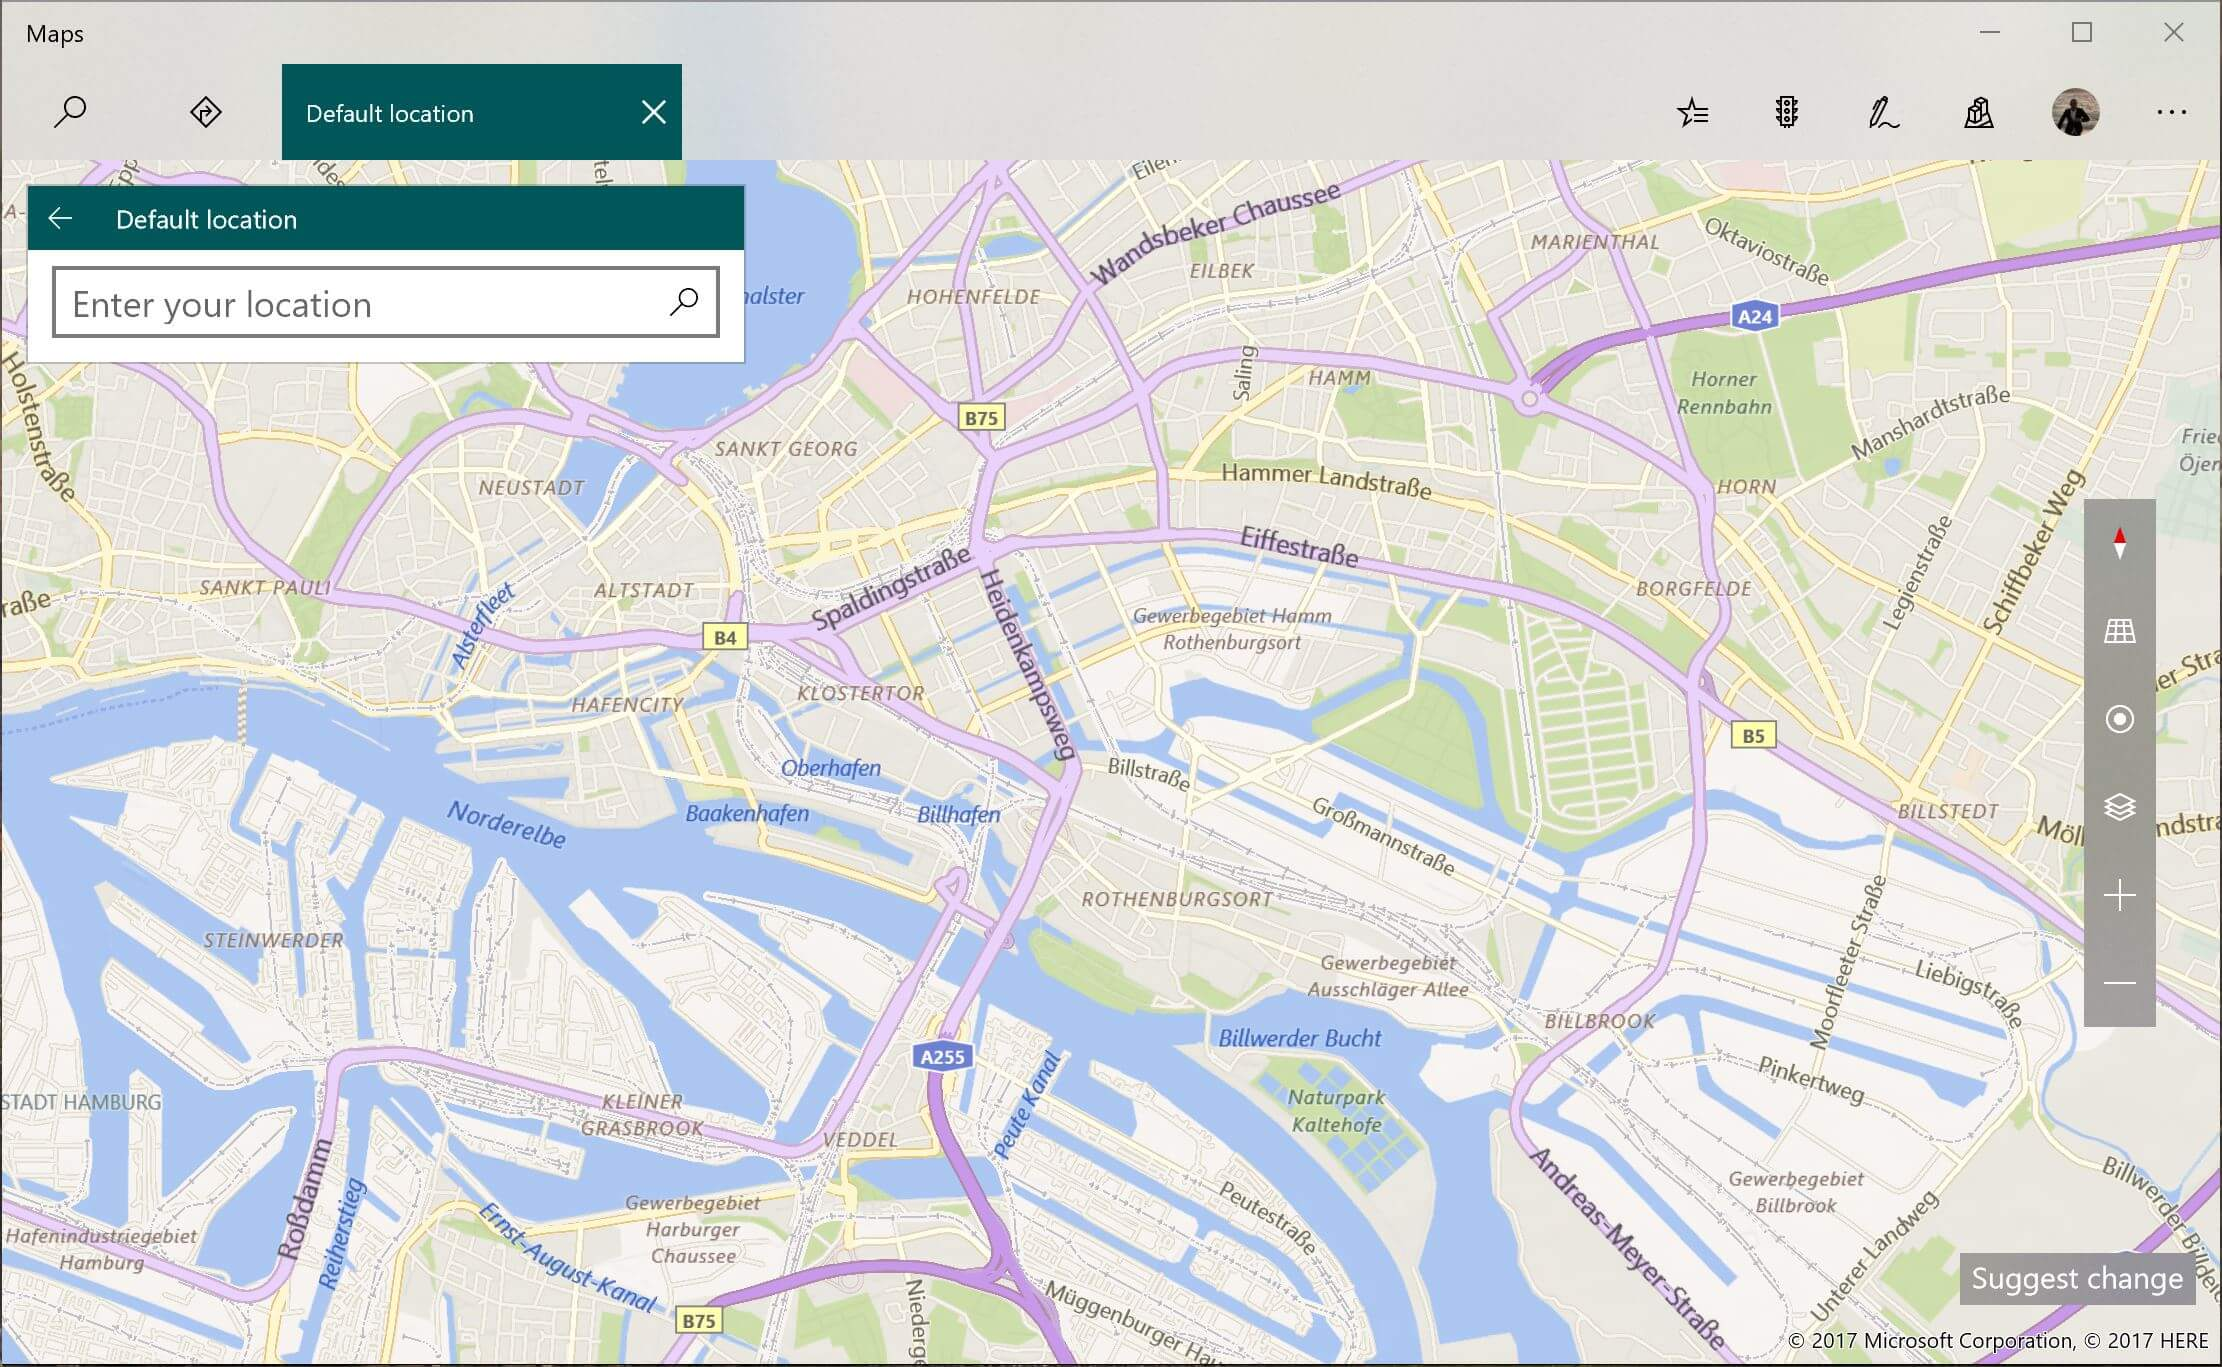 The location settings in Windows 10